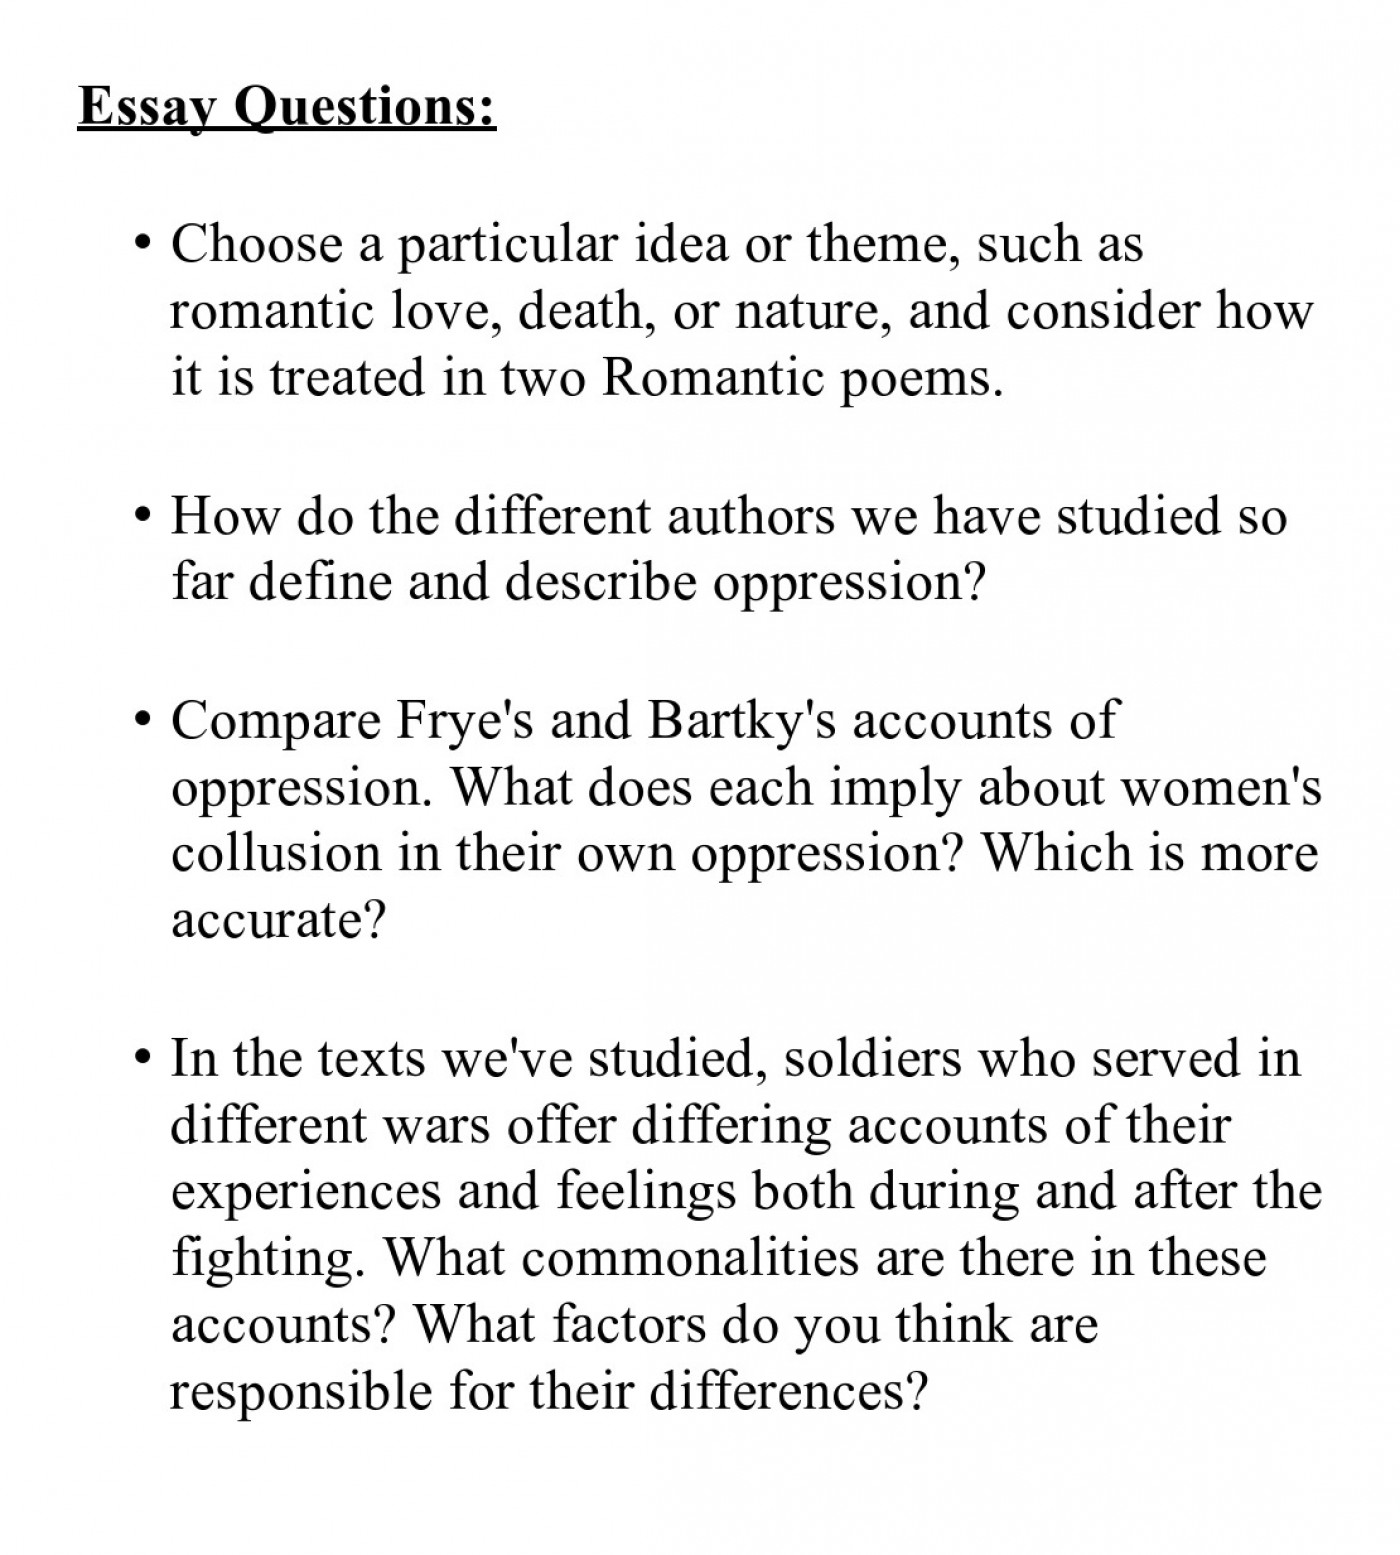 007 Essay Example Prompts Questions Best Topics For Lord Of The Flies High School Seniors Argumentative Frankenstein 1400